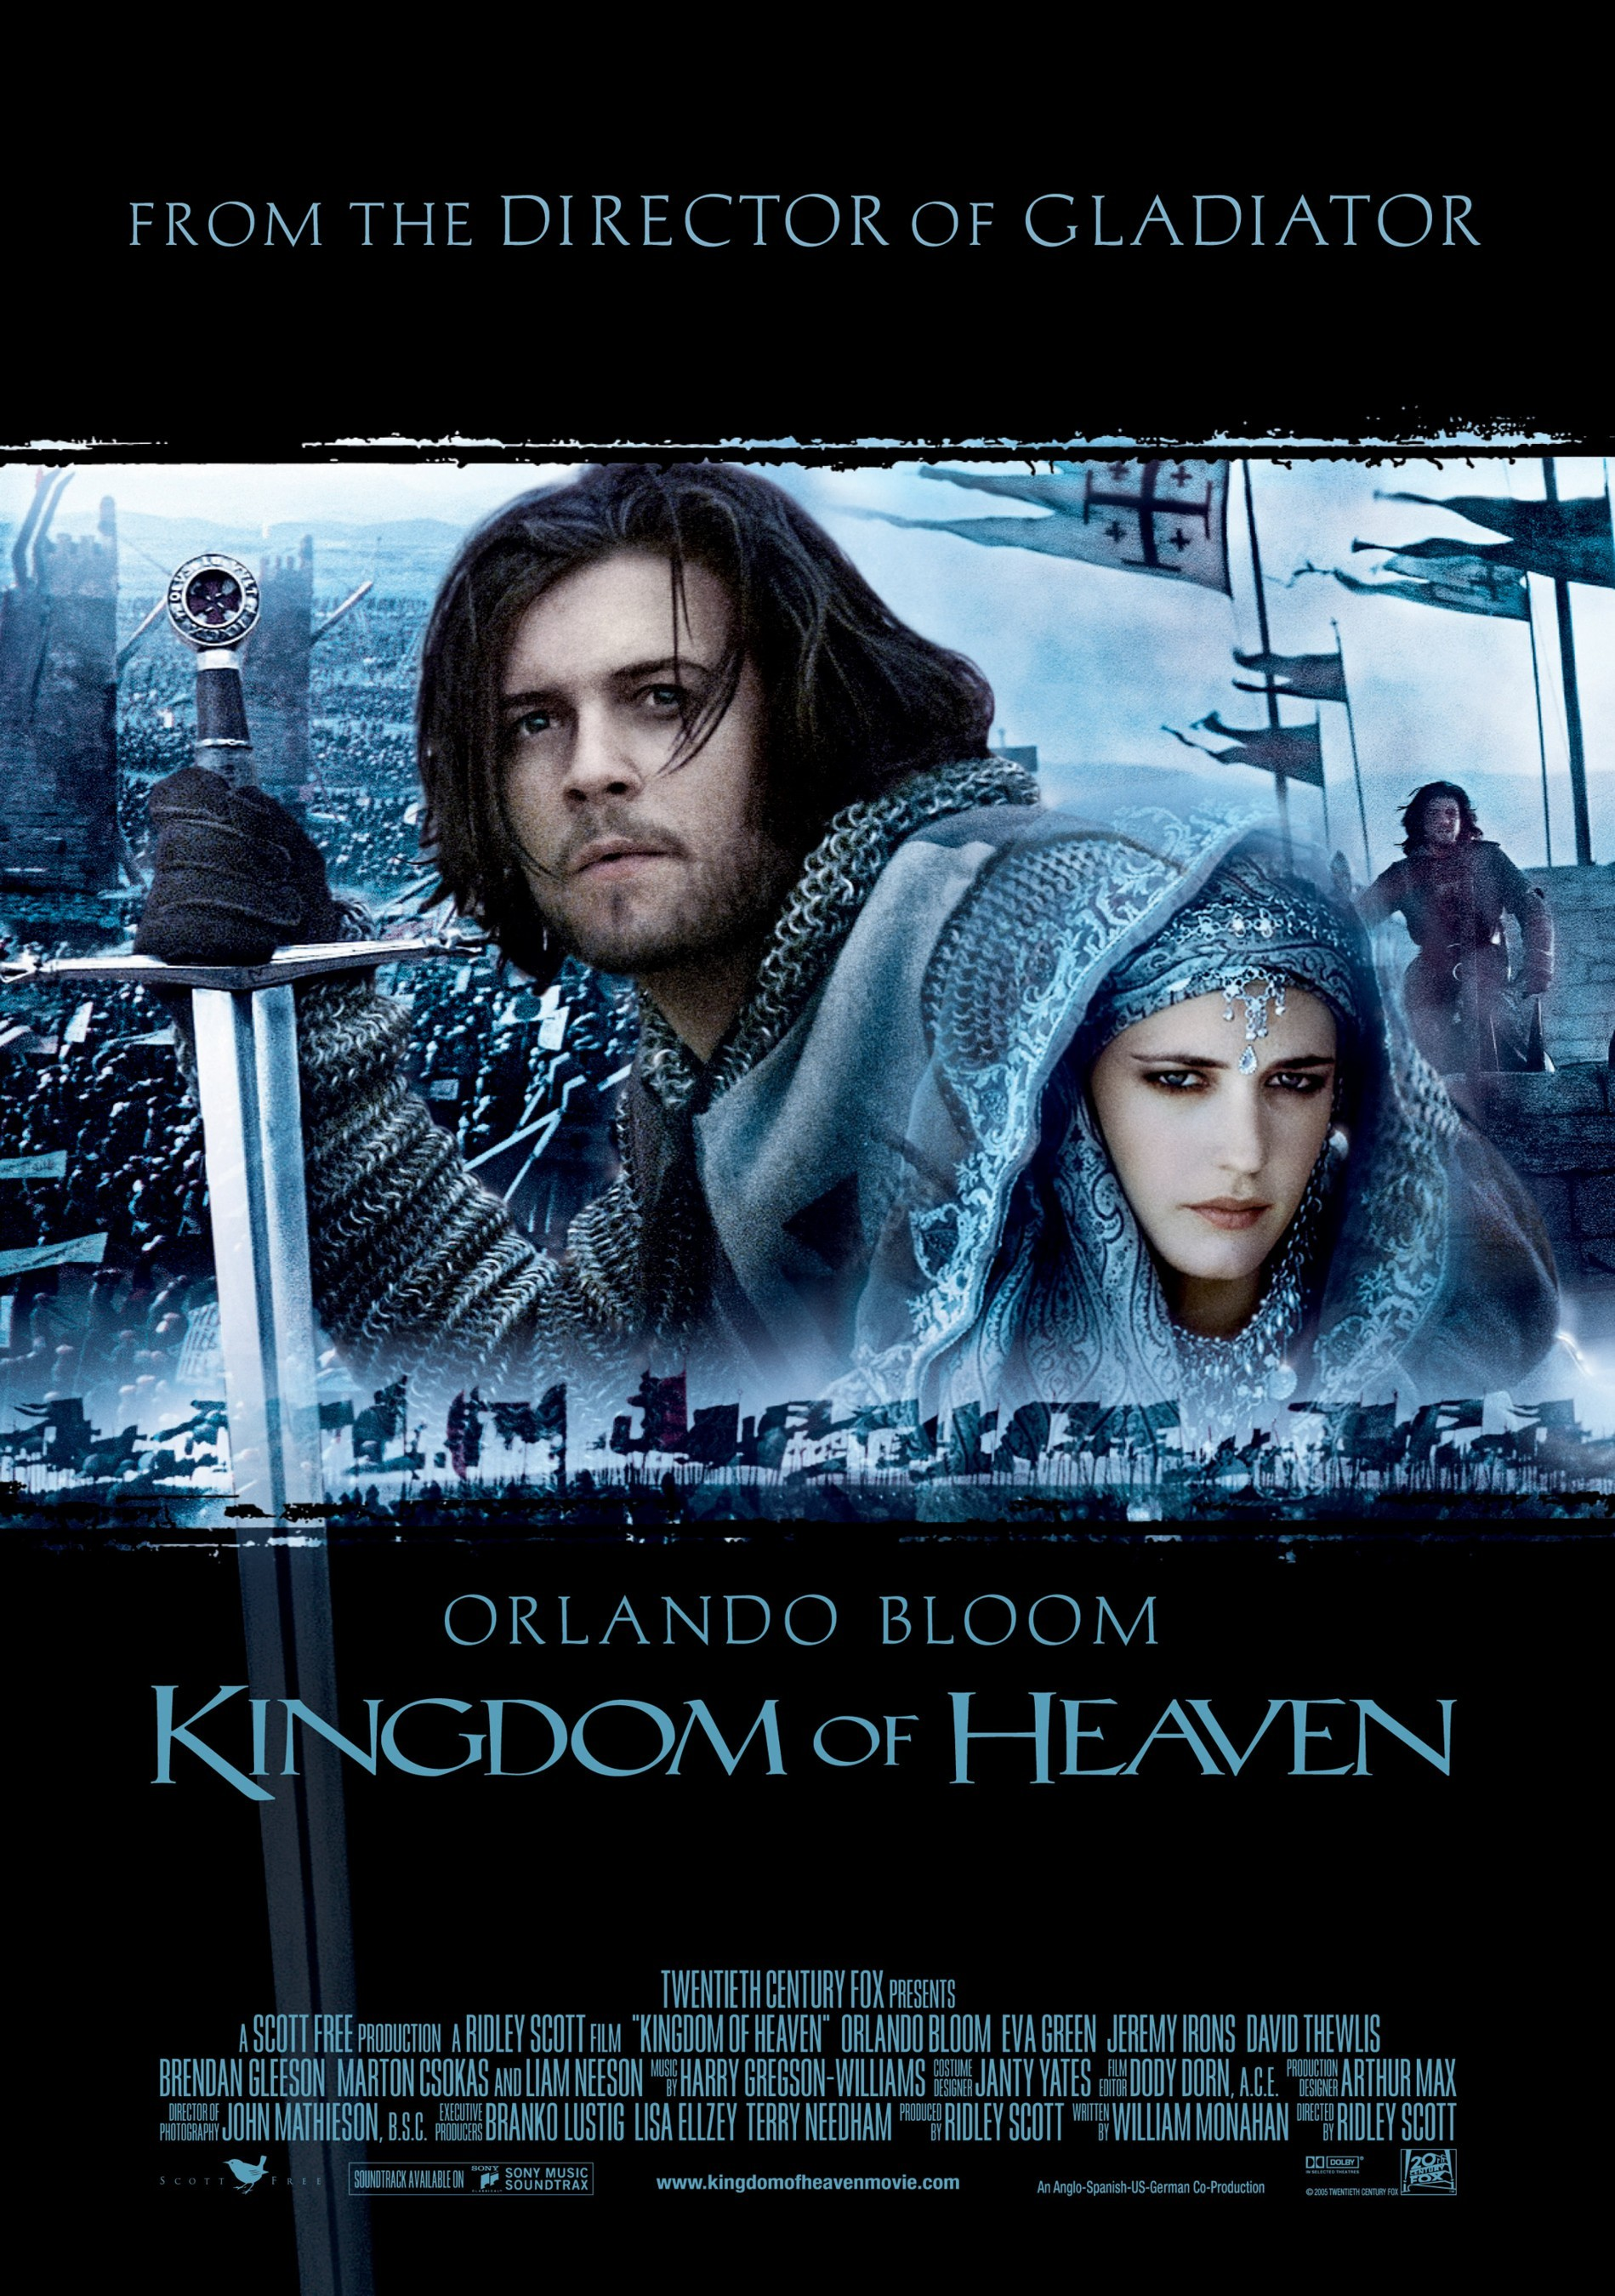 Kingdom of Heaven movie HD Wallpaper